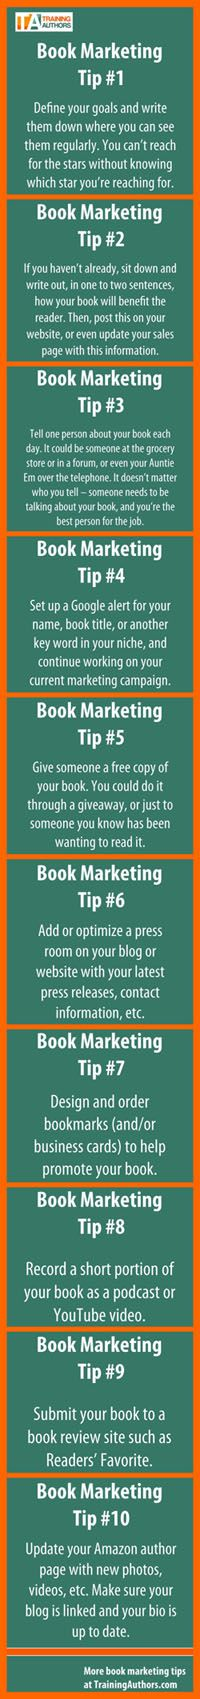 Need to promote a new book, product, website, idea, or service? Here are 10 book marketing tips that will help almost anyone marketing a product, service, or idea. #books #ebooks #marketing #authors #bookmarketingtips